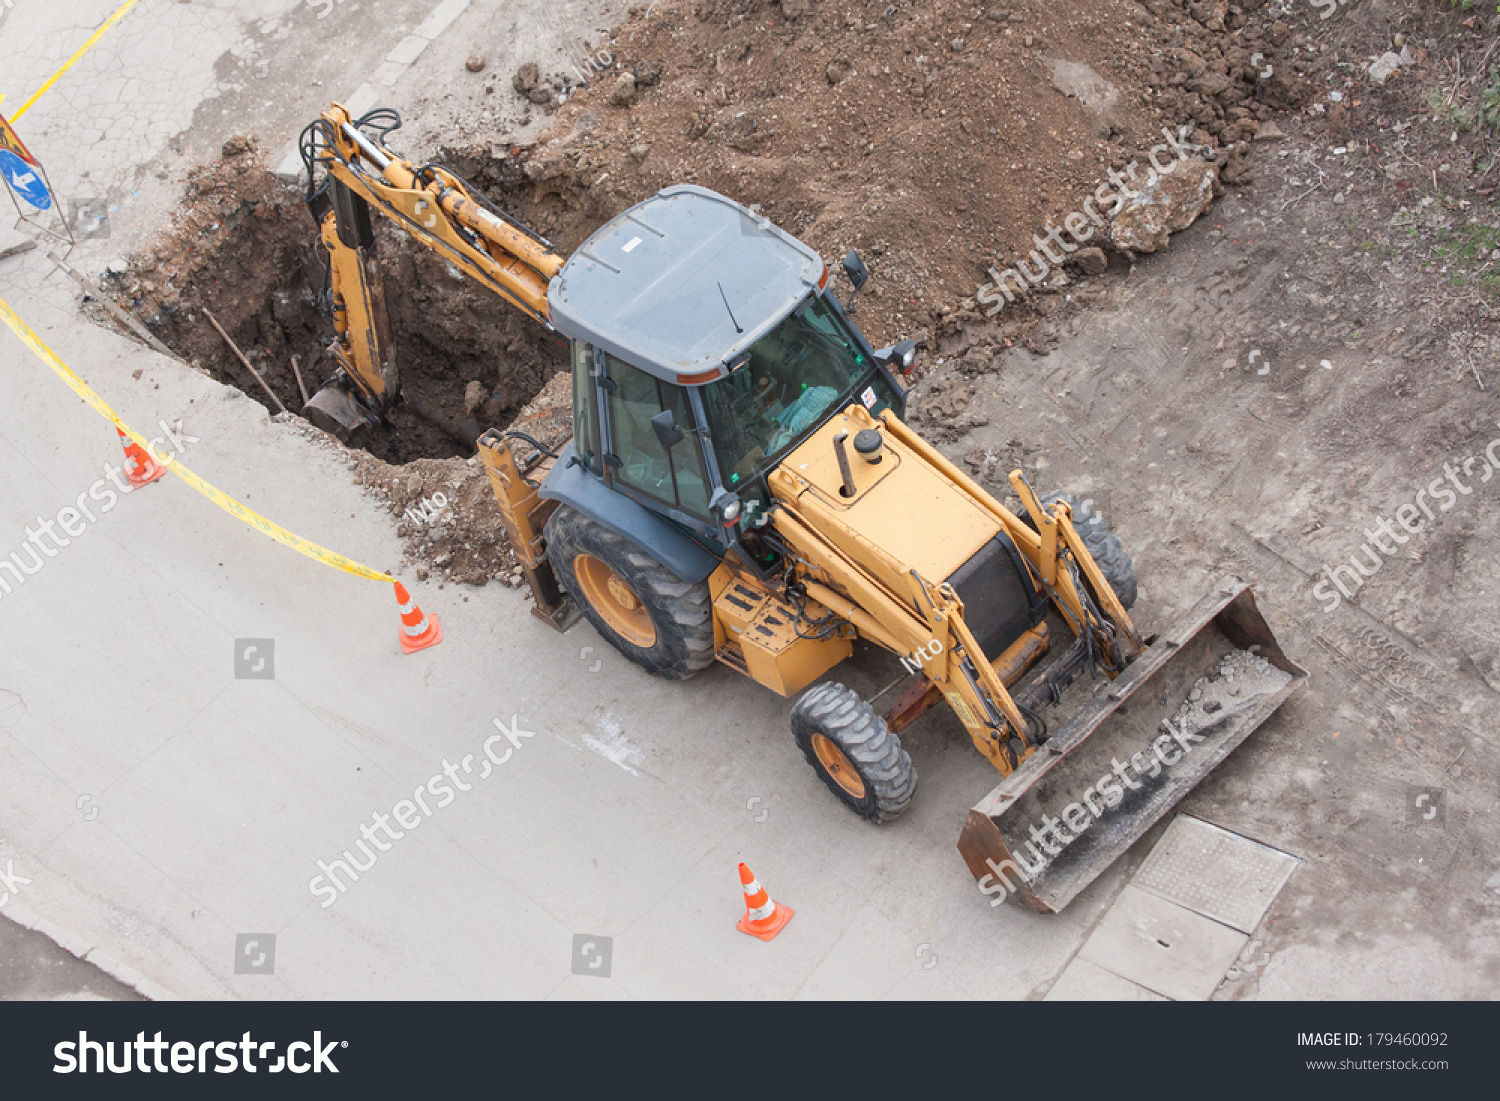 Tractor Water Pipe : Tractor excavator digging the ground to stop leaking